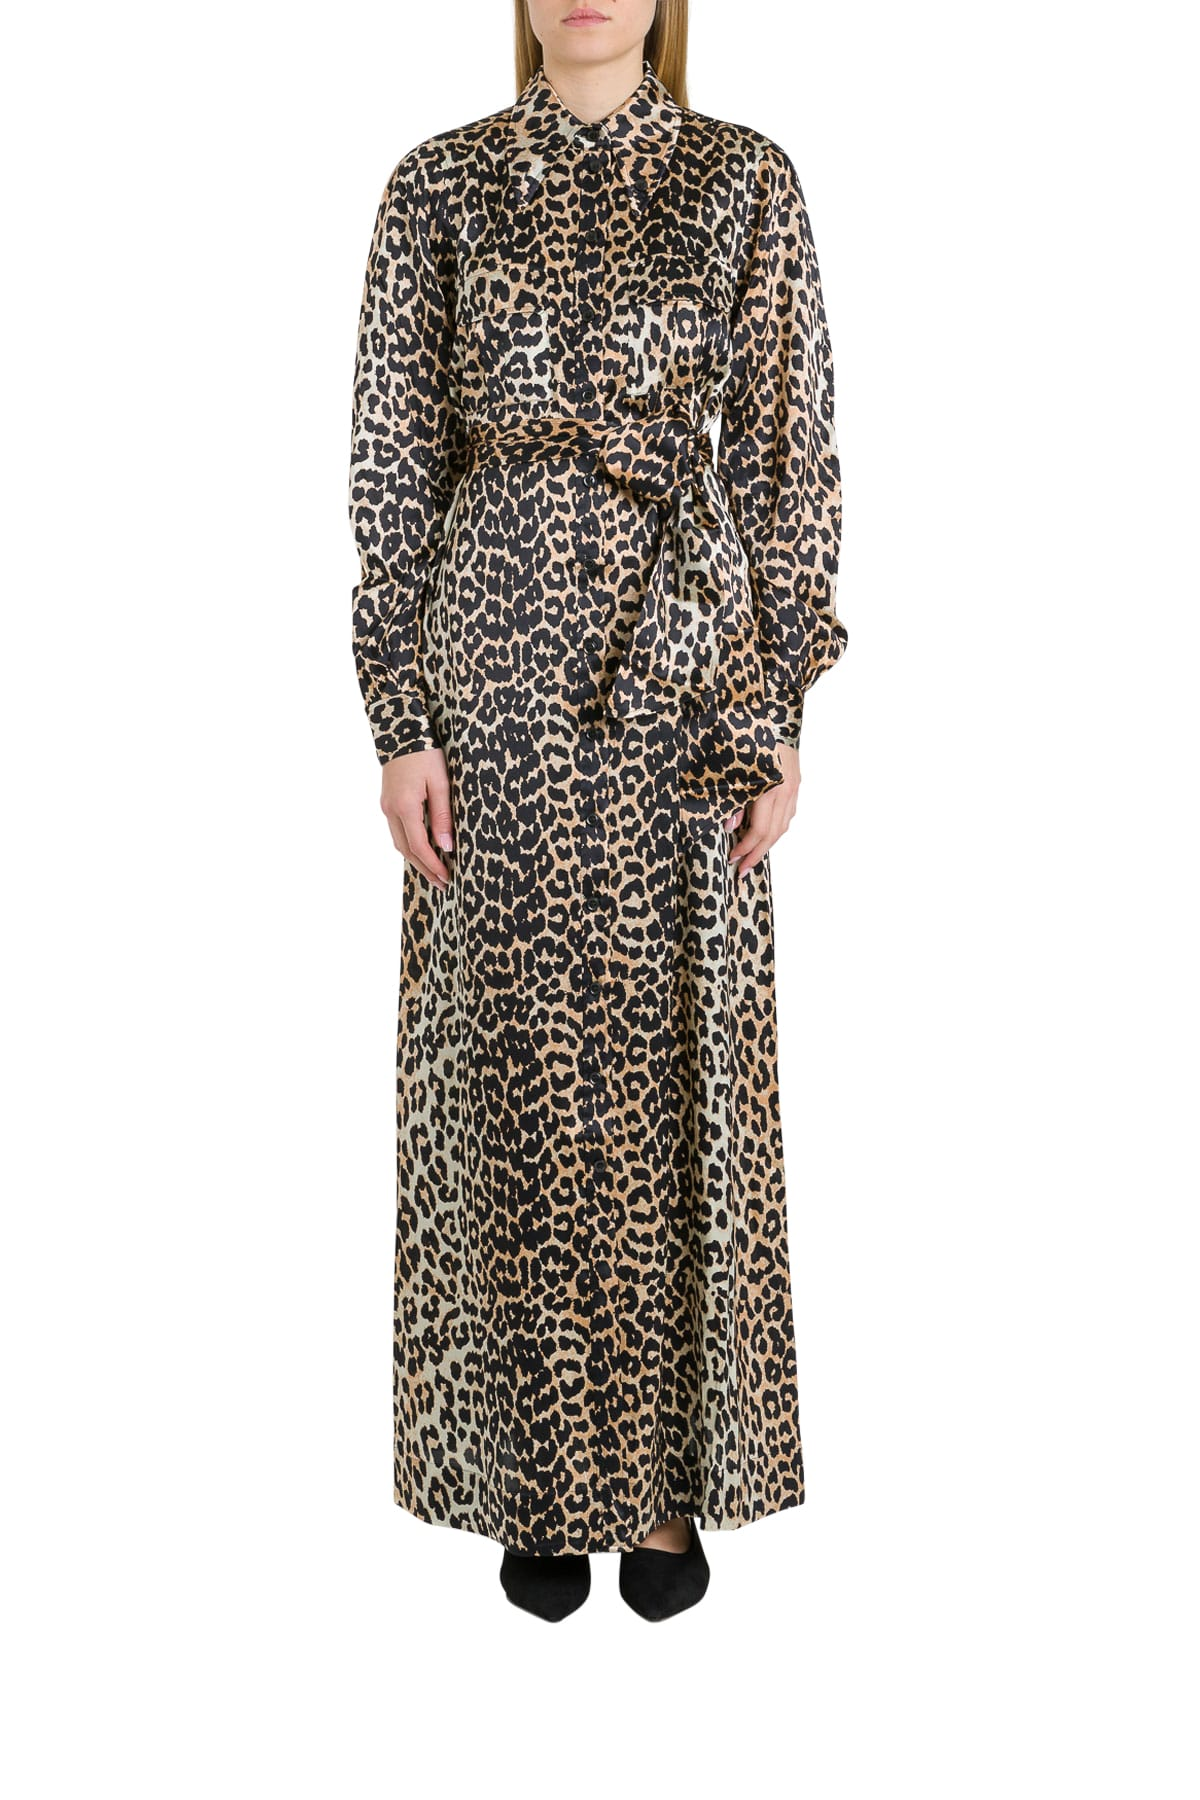 Buy Ganni Pinafore Dress In Leopard Silk online, shop Ganni with free shipping